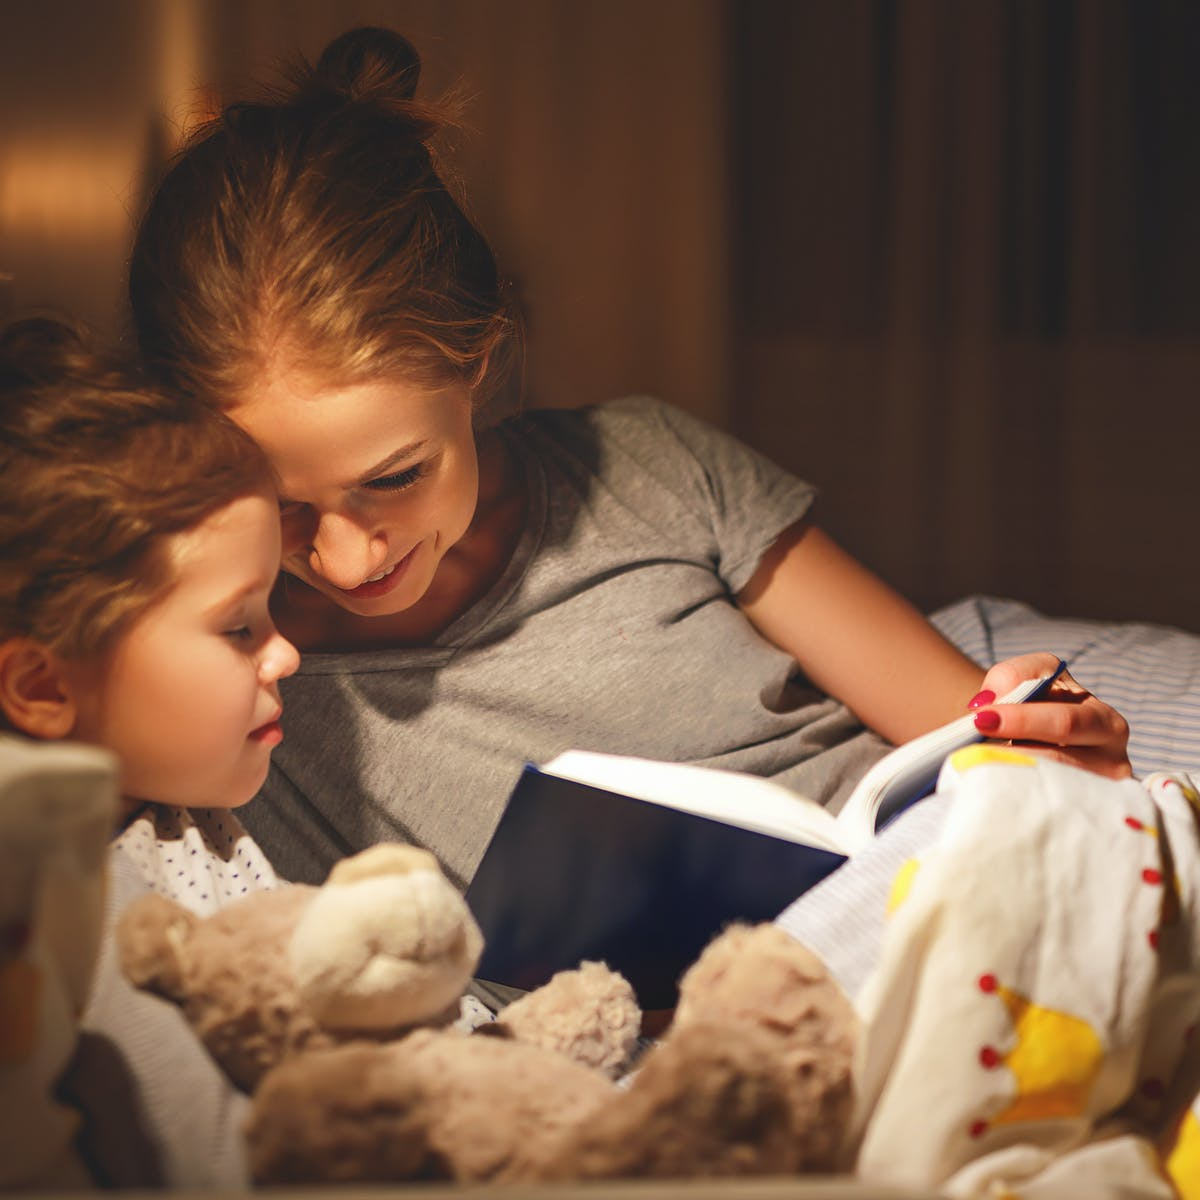 Eight bedtime stories to read to children of all ages